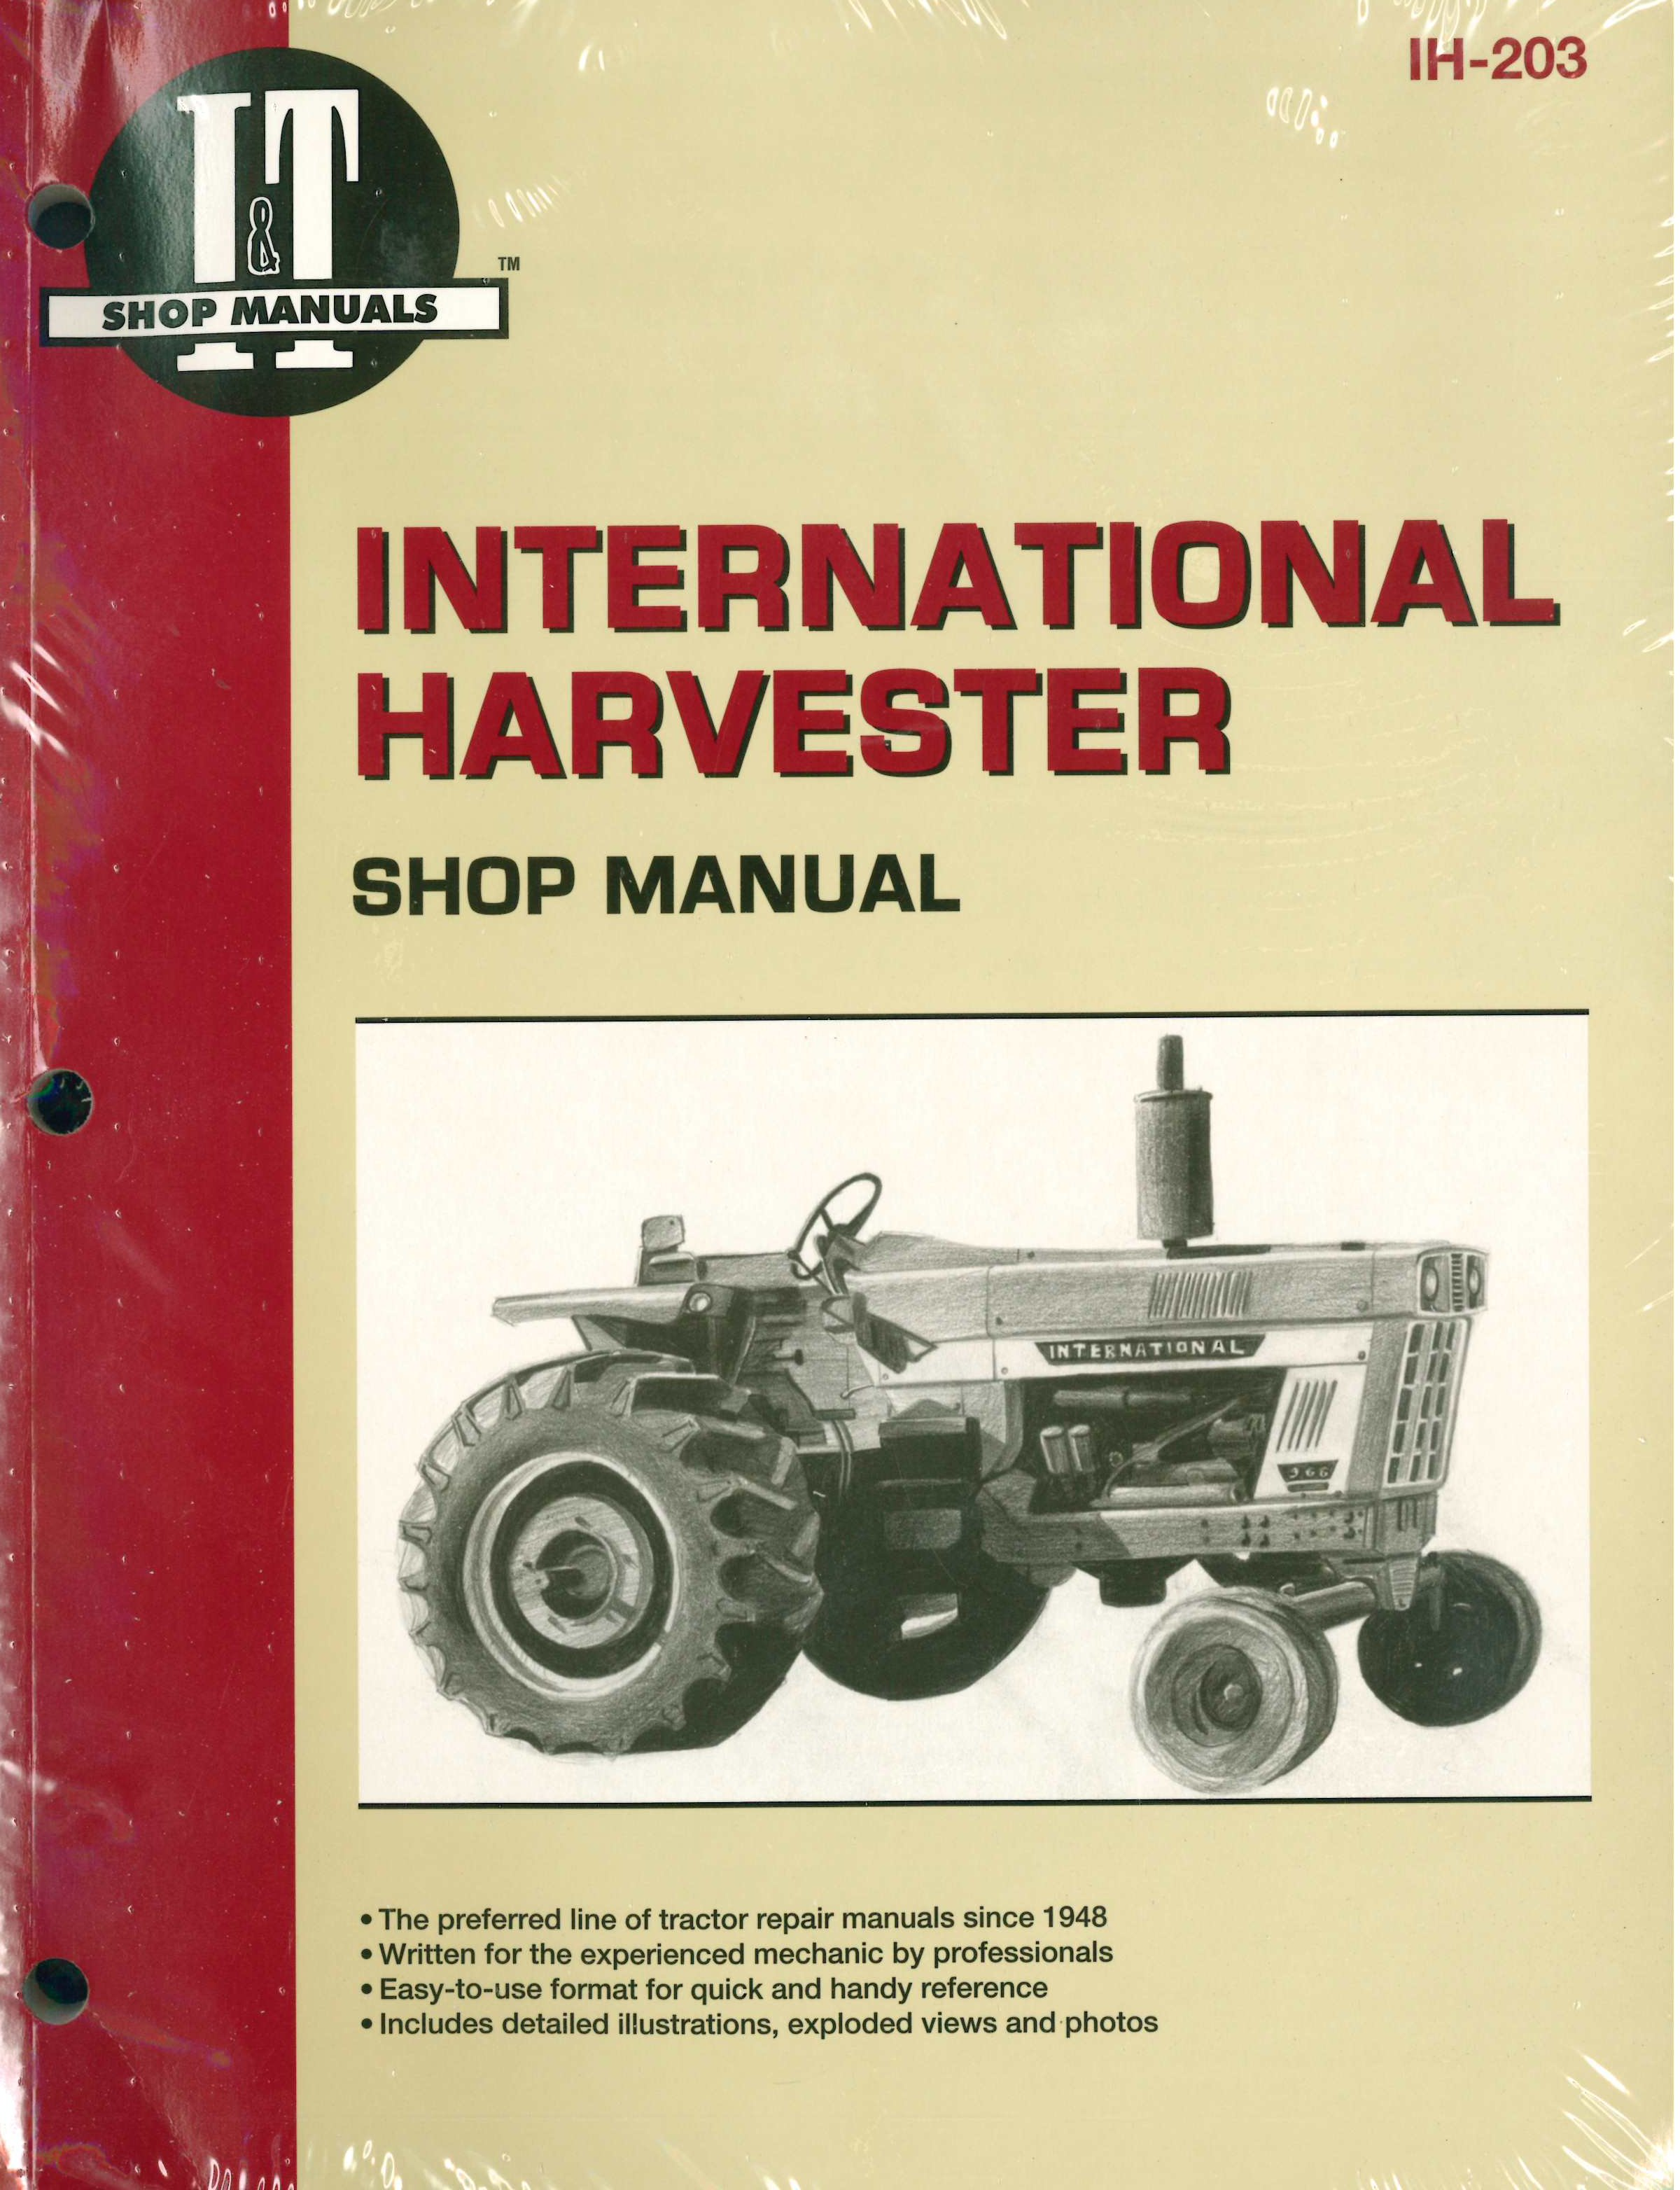 International Harvester Tractor Service Manual 454 464 484 574 584 674 766 786 826 886 966 986